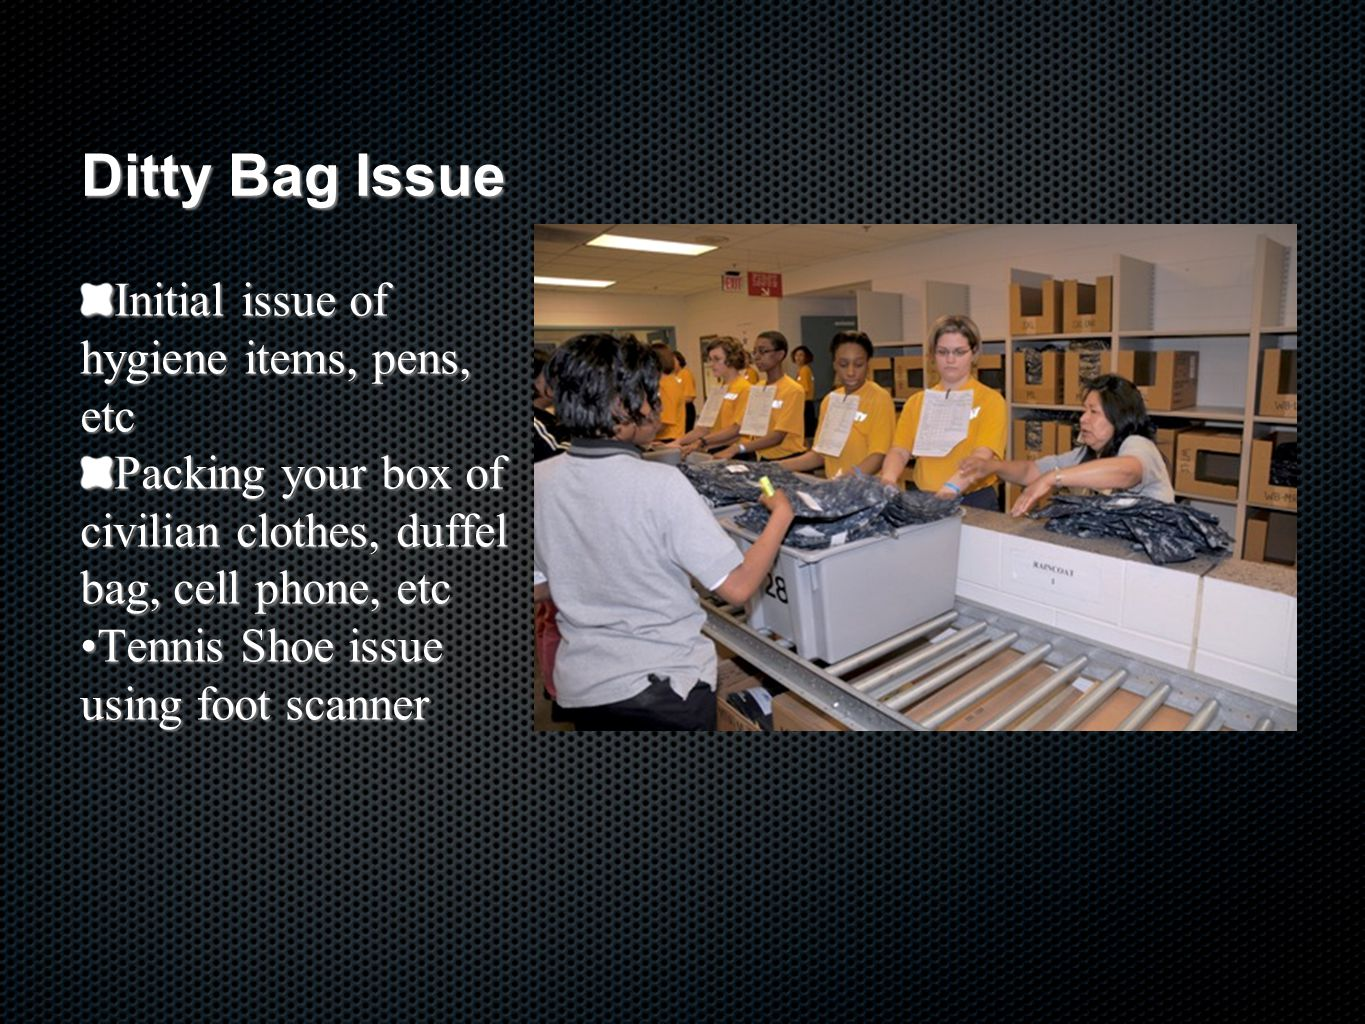 Ditty Bag Issue Initial issue of hygiene items, pens, etc